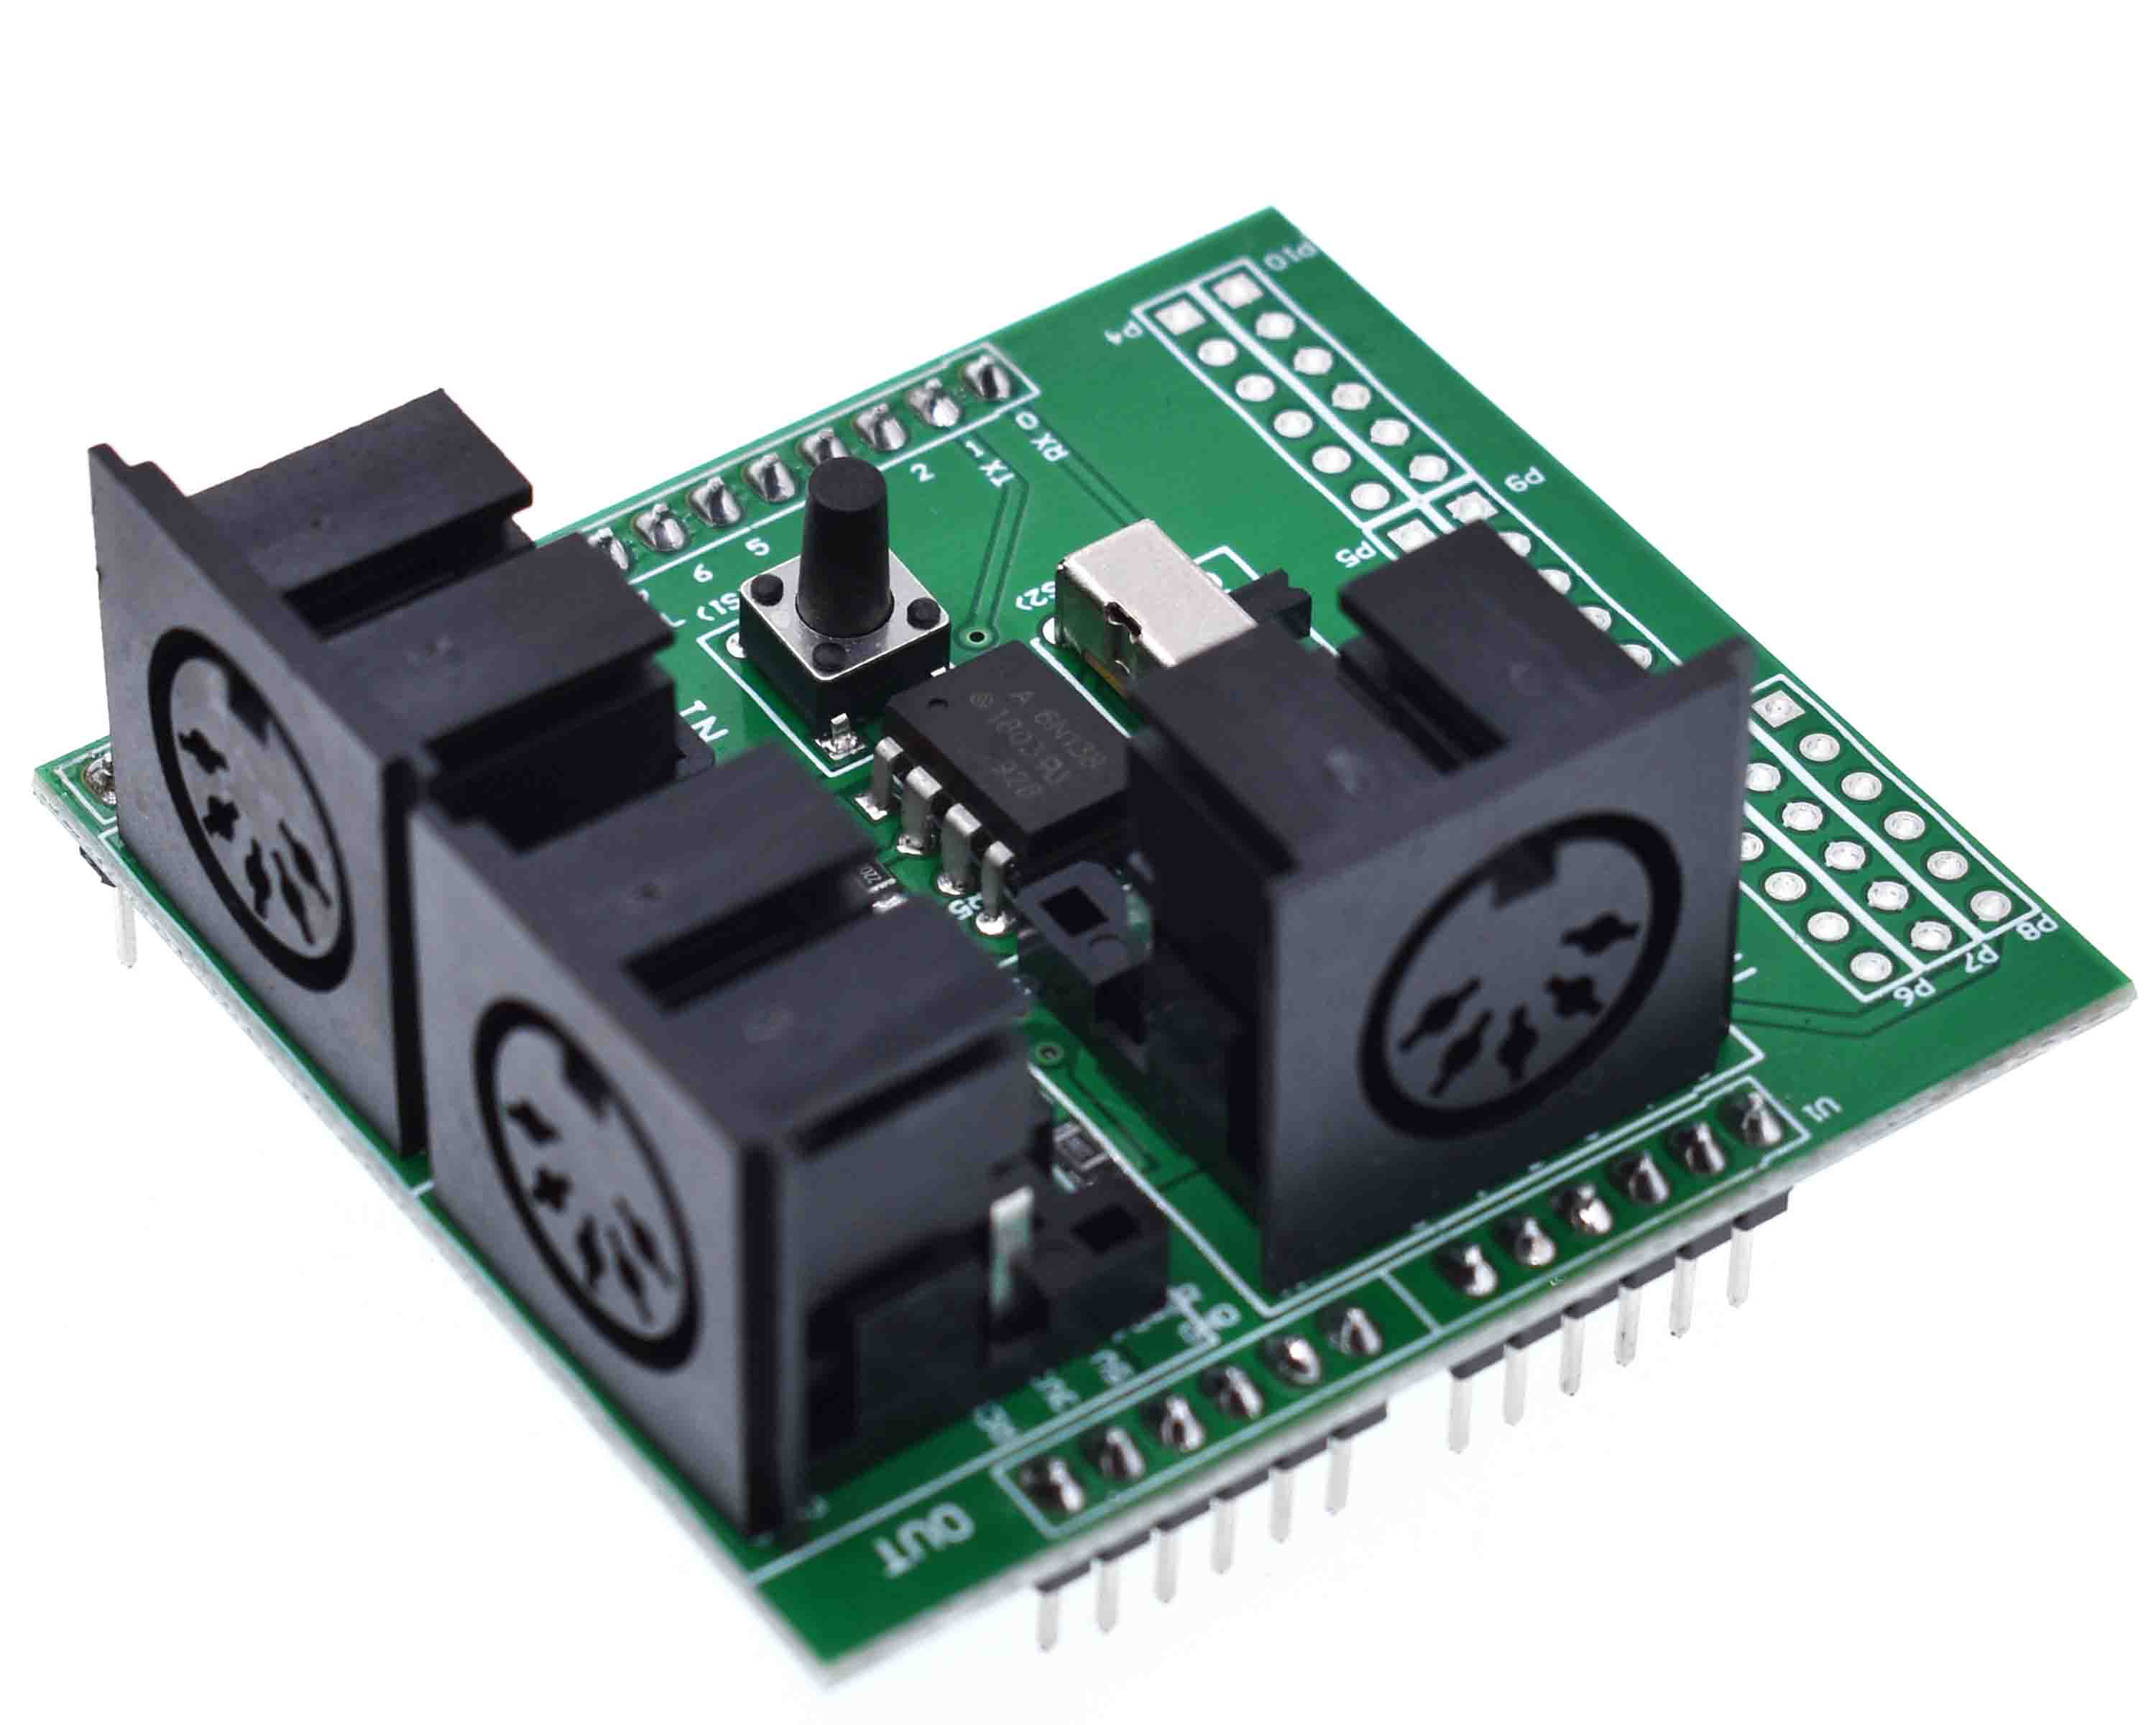 MIDI Shield Musical Breakout Board Instrument Digital Interface Adapter Plate For Compatible Arduino Adapter Board ModuleMIDI Shield Musical Breakout Board Instrument Digital Interface Adapter Plate For Compatible Arduino Adapter Board Module